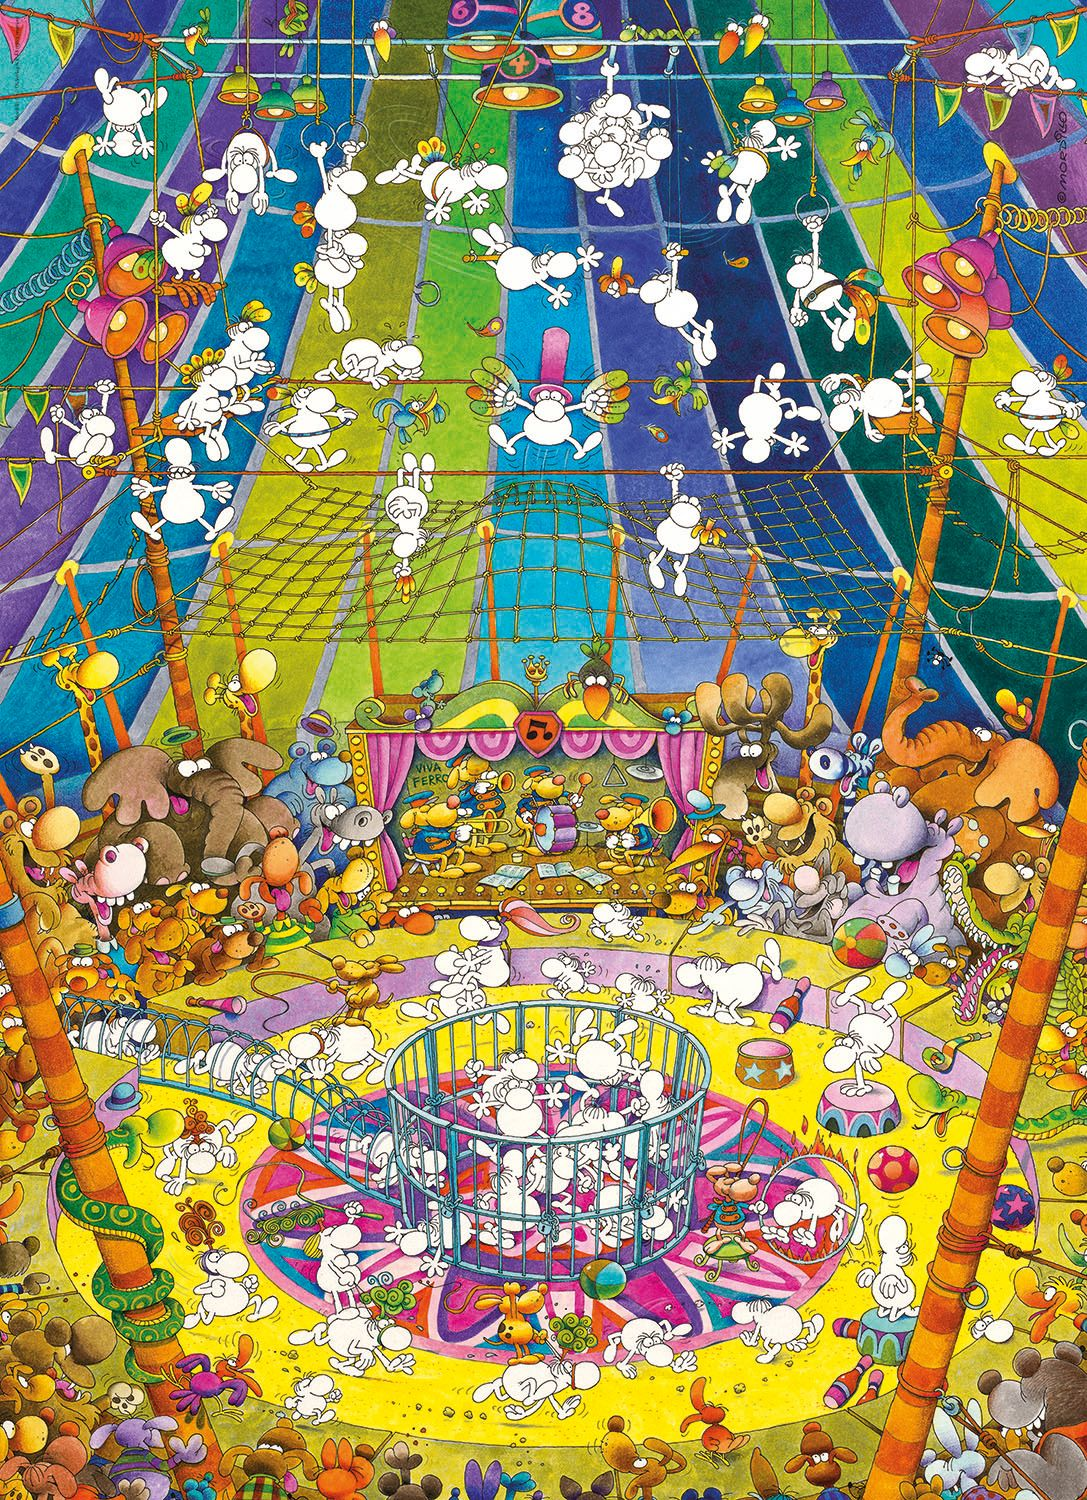 The Show Graphics / Illustration Jigsaw Puzzle